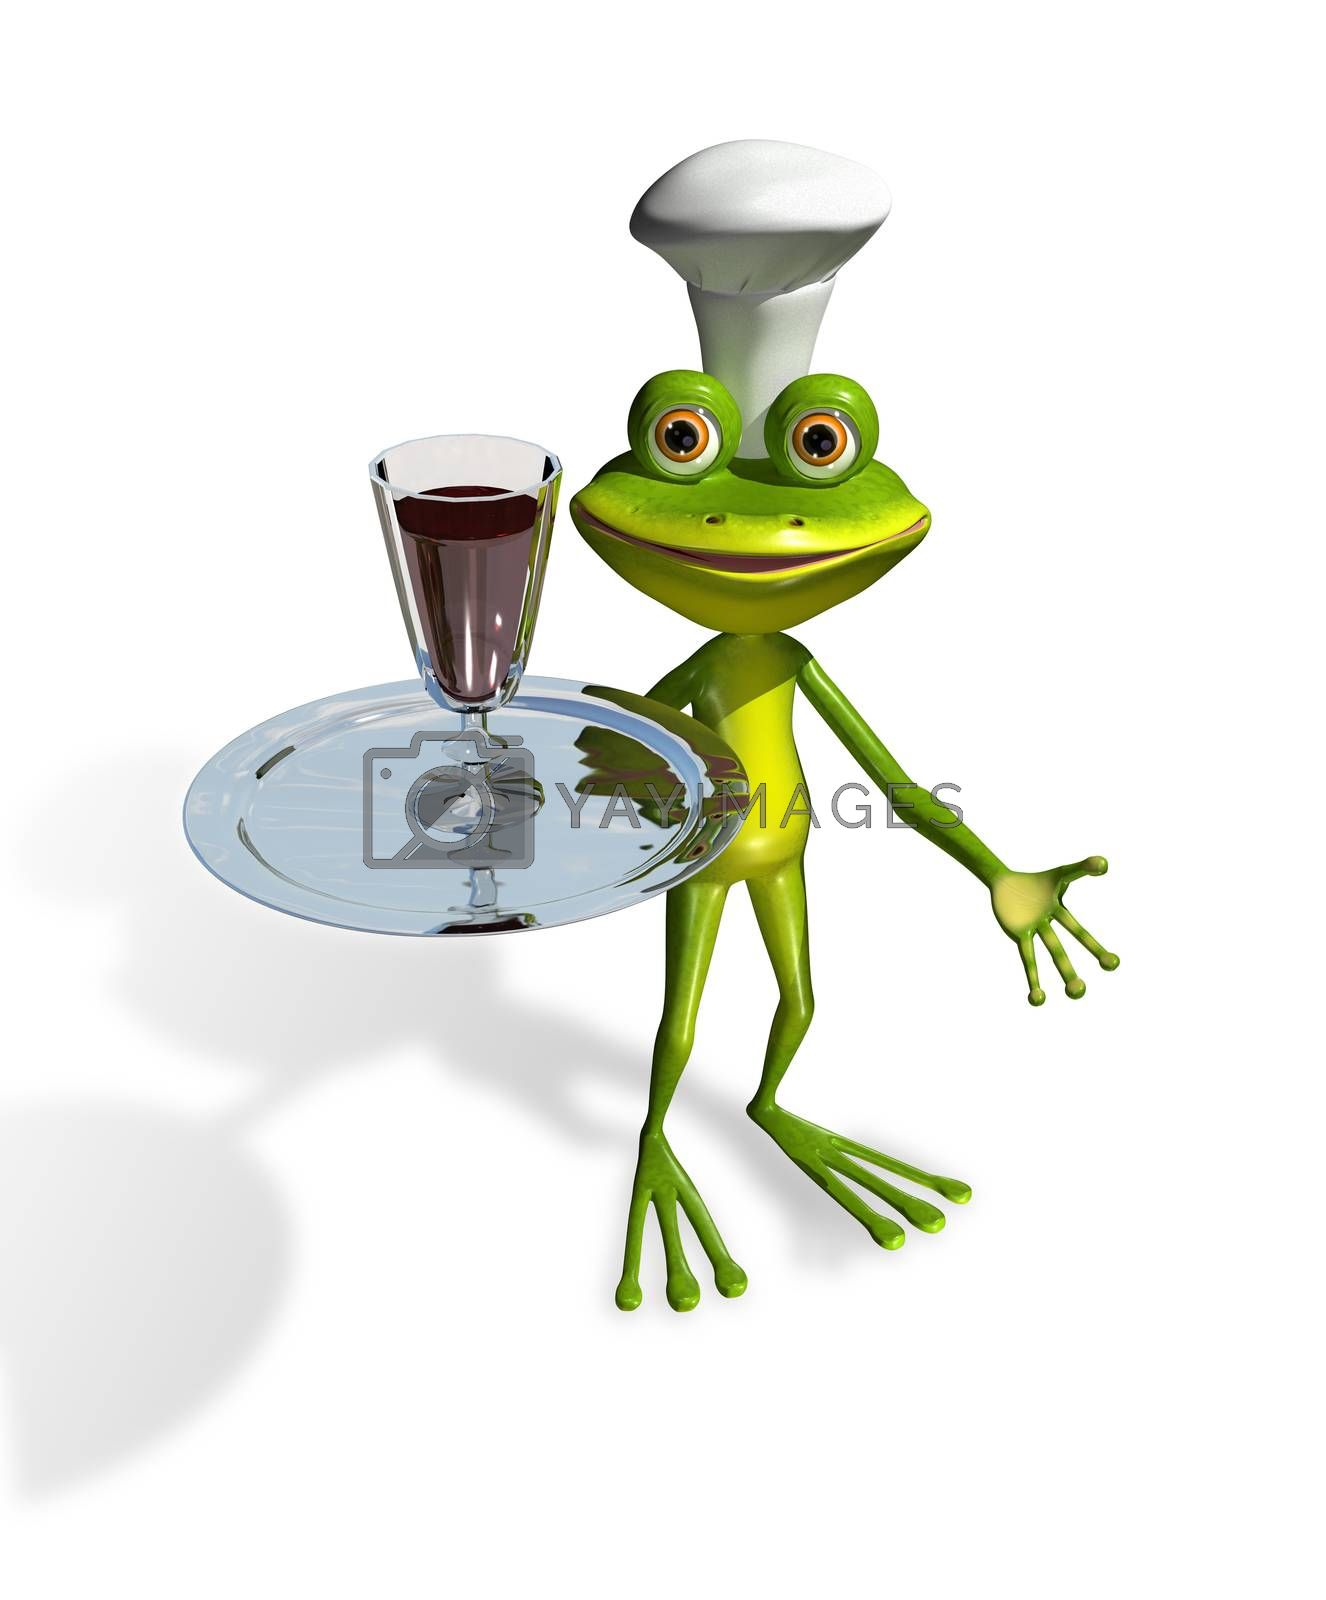 abstract illustration frog with a glass of wine on a tray